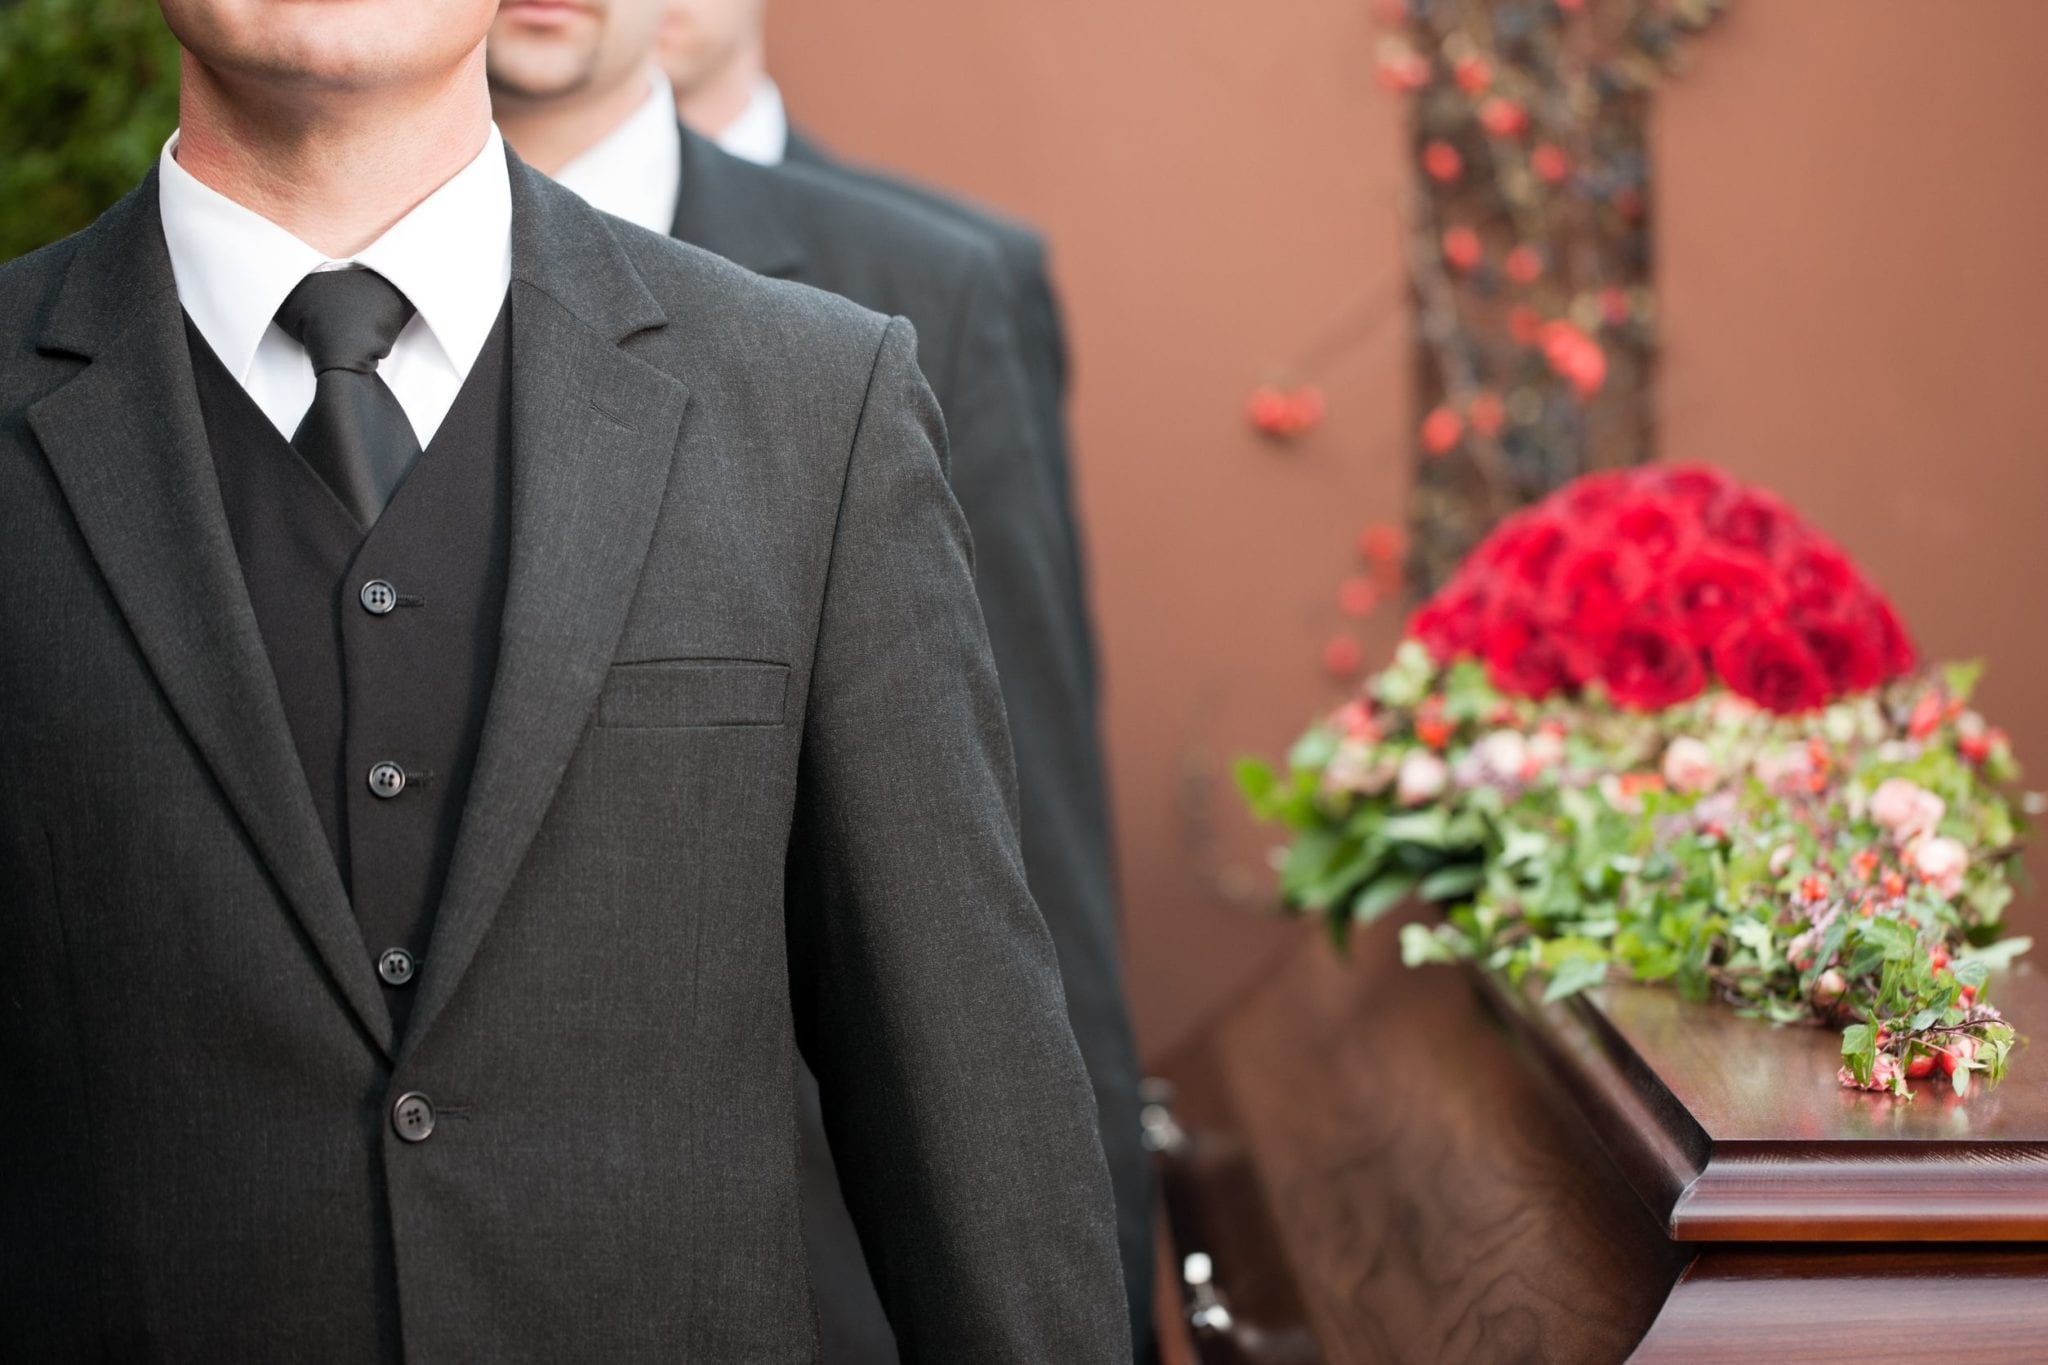 Fort Worth Funeral Home Negligence Attorneys